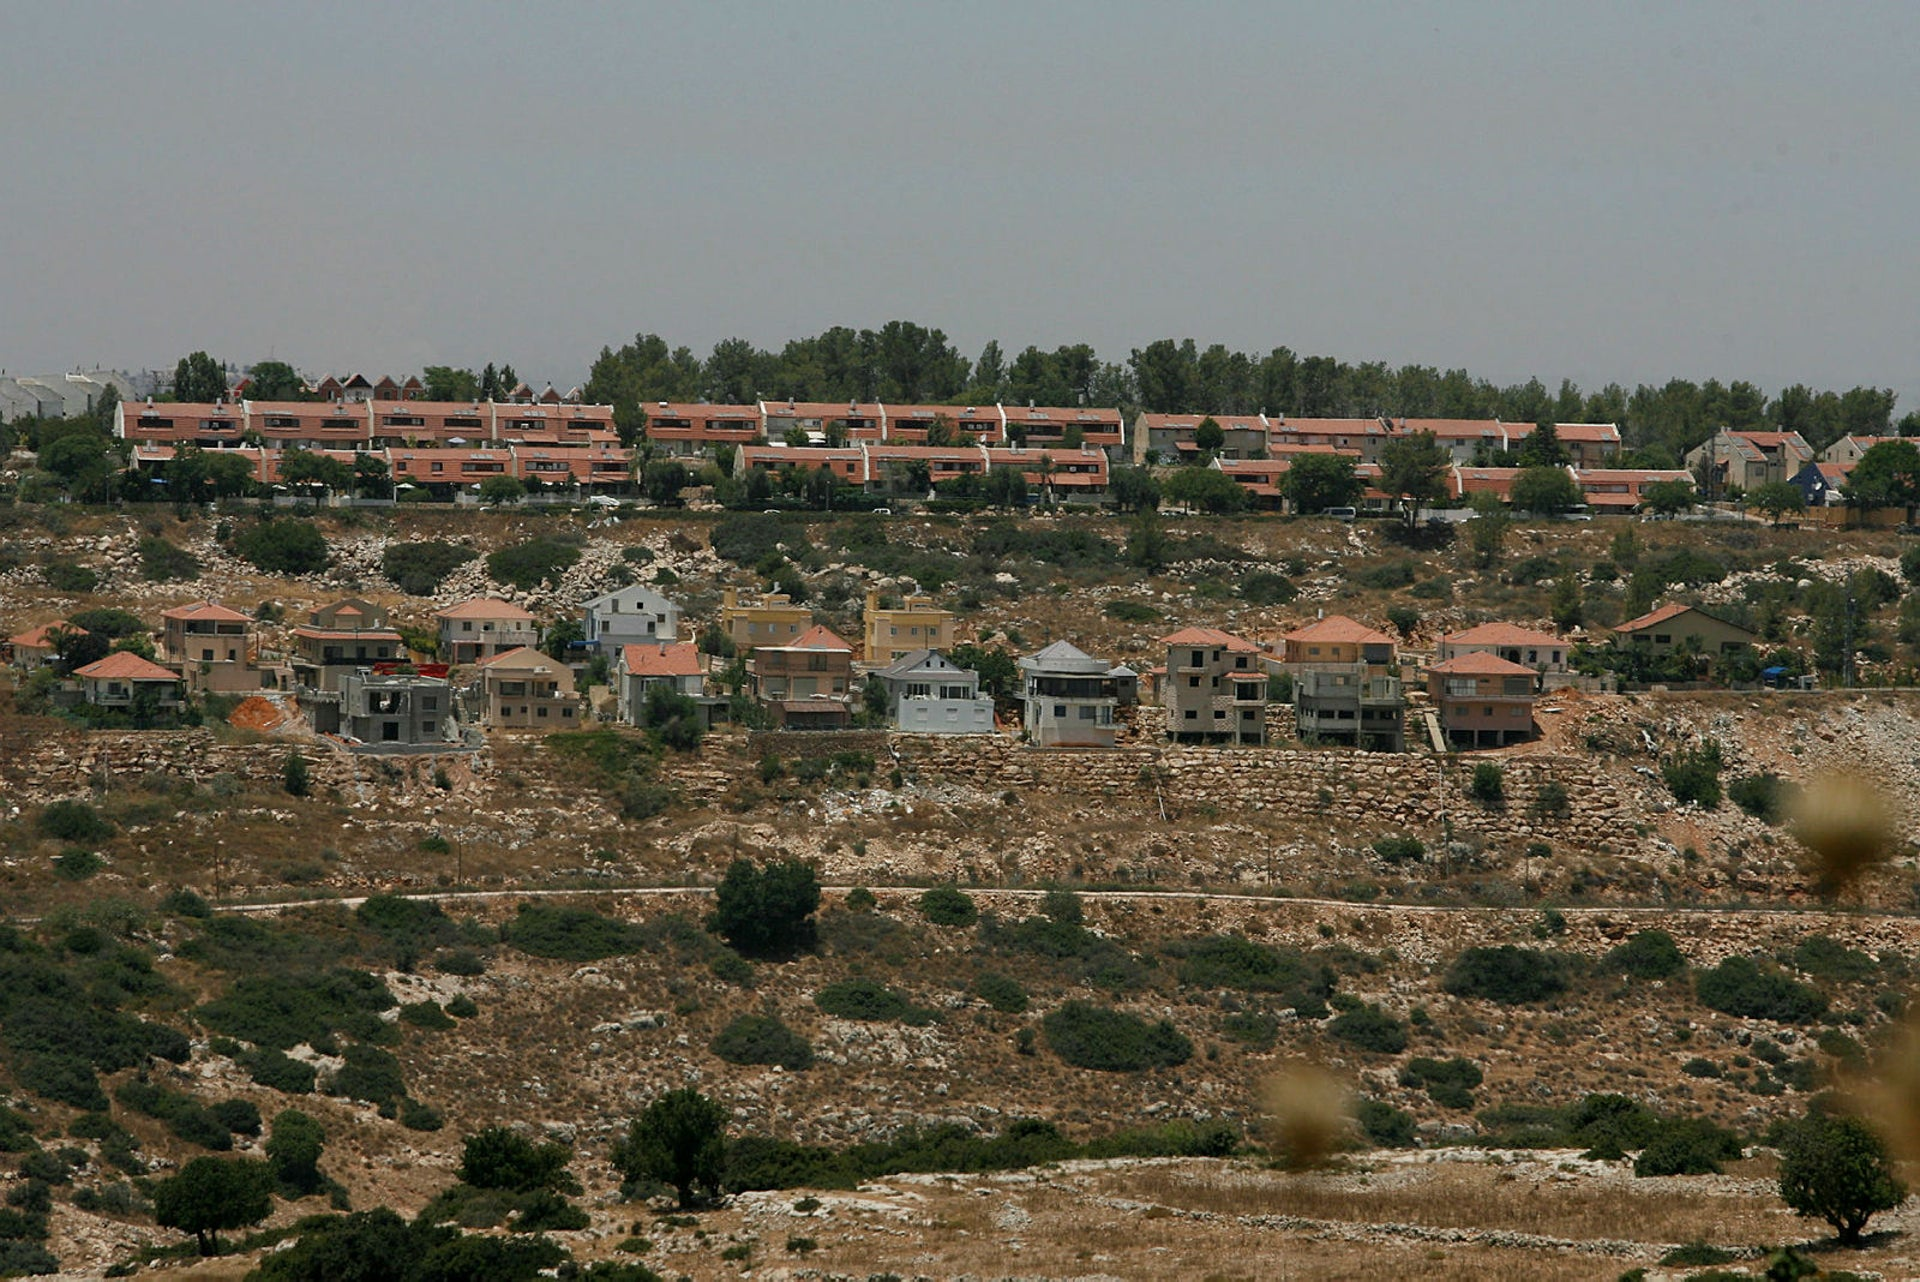 The West Bank settlement of Karnei Shomron.